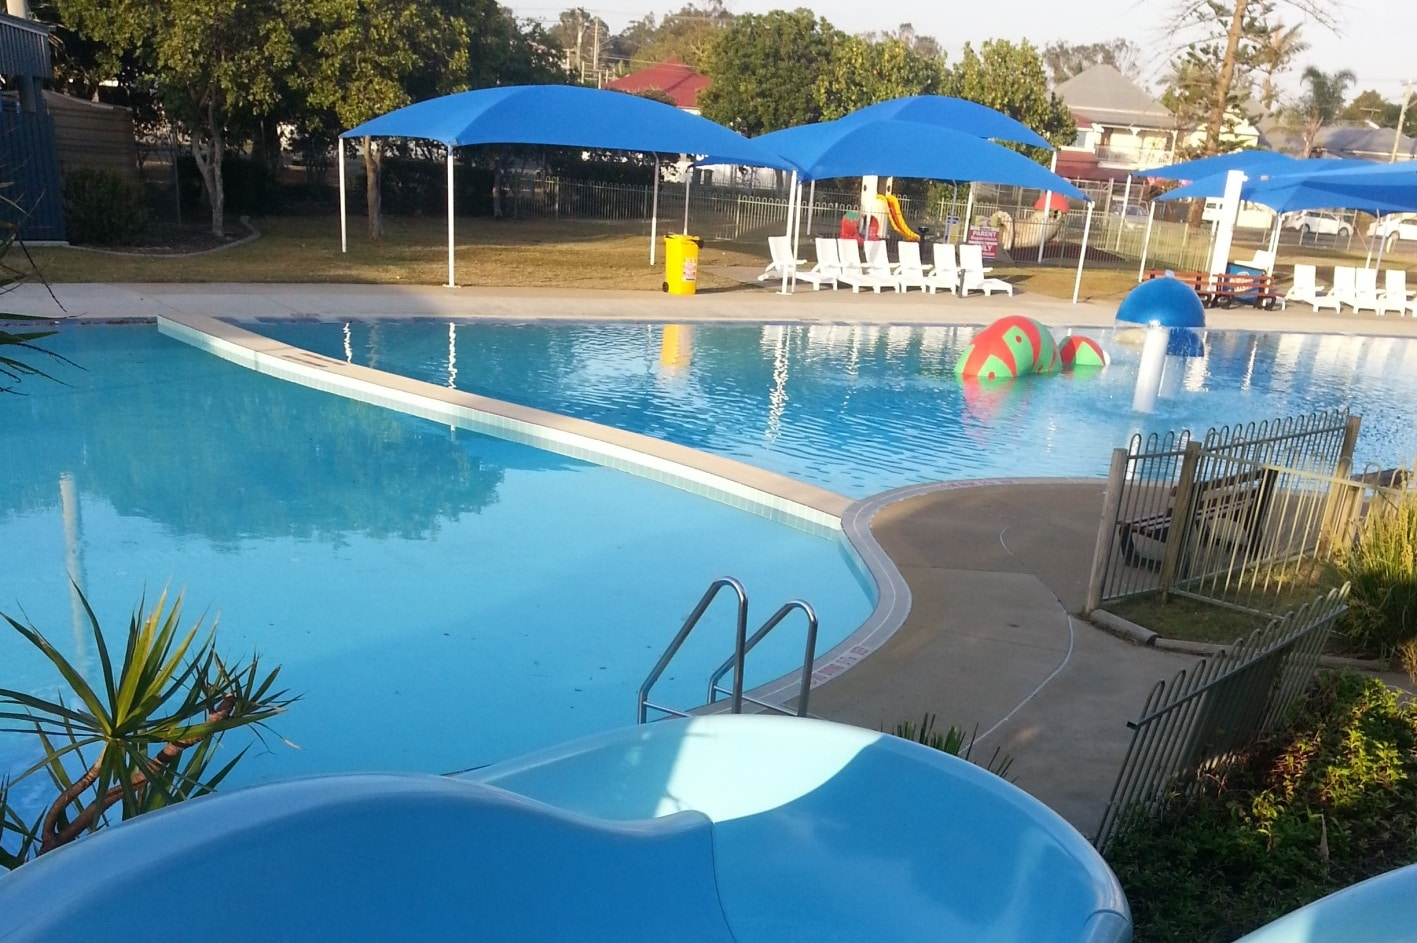 Sandgate Aquatic Centre Sandgate Brisbane Kids